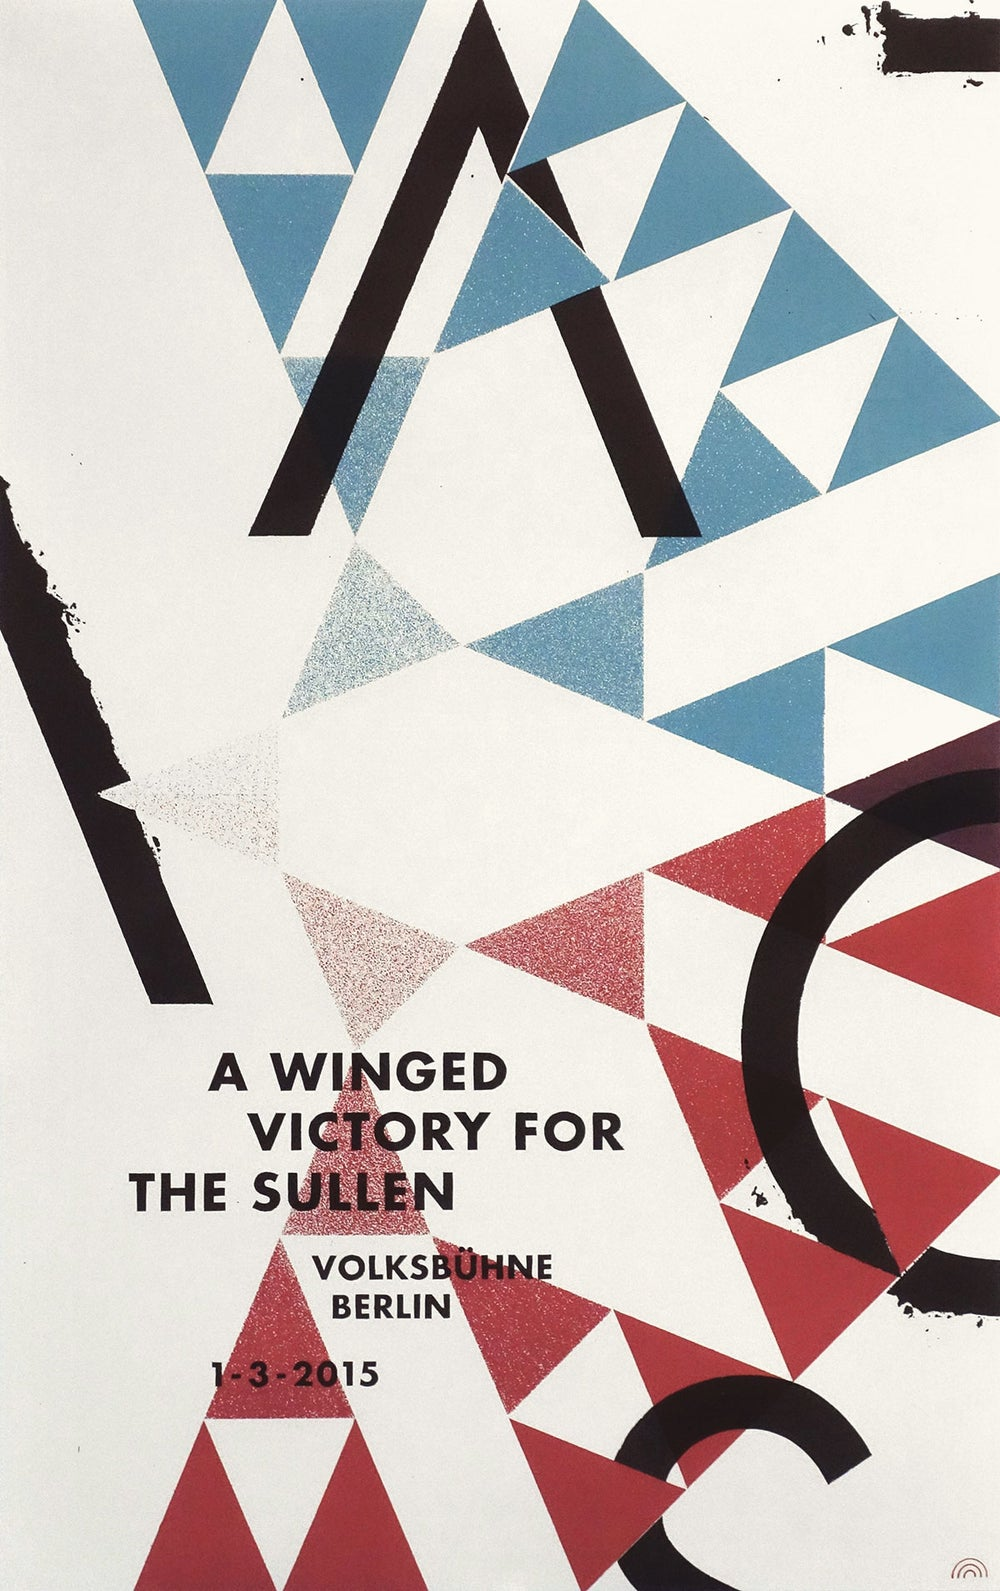 Image of A WINGED VICTORY FOR THE SULLEN